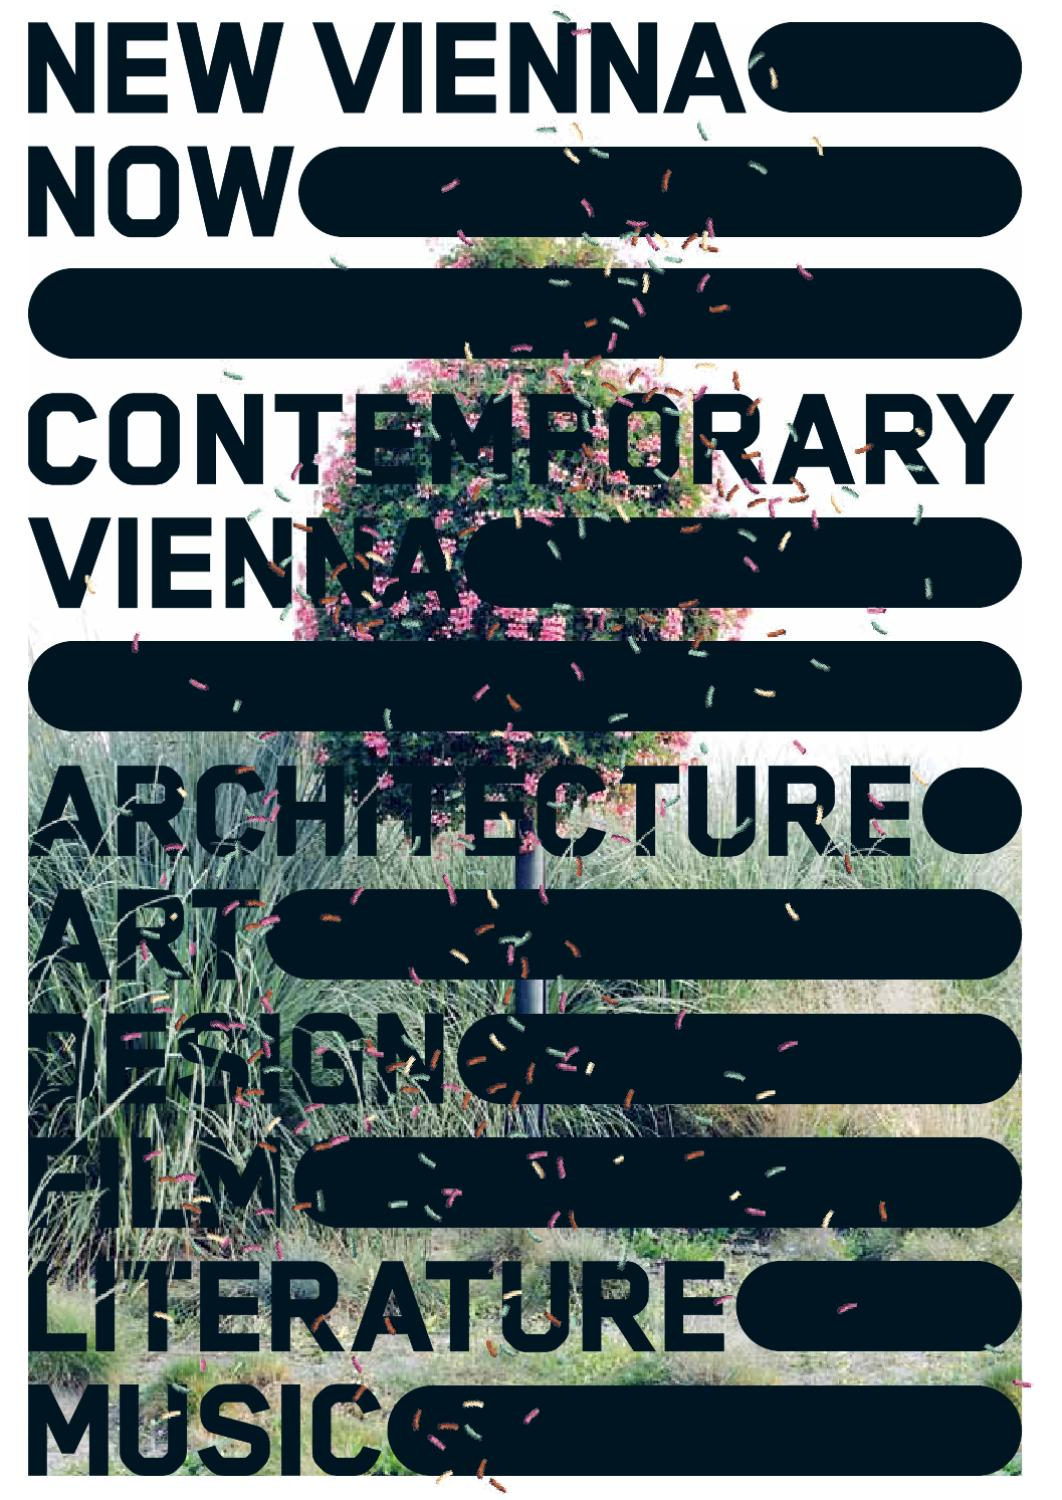 NEW VIENNA NOW/CONTEMPORARY VIENNA by Wirtschaftsagentur Wien,  Kreativzentrum departure - issuu